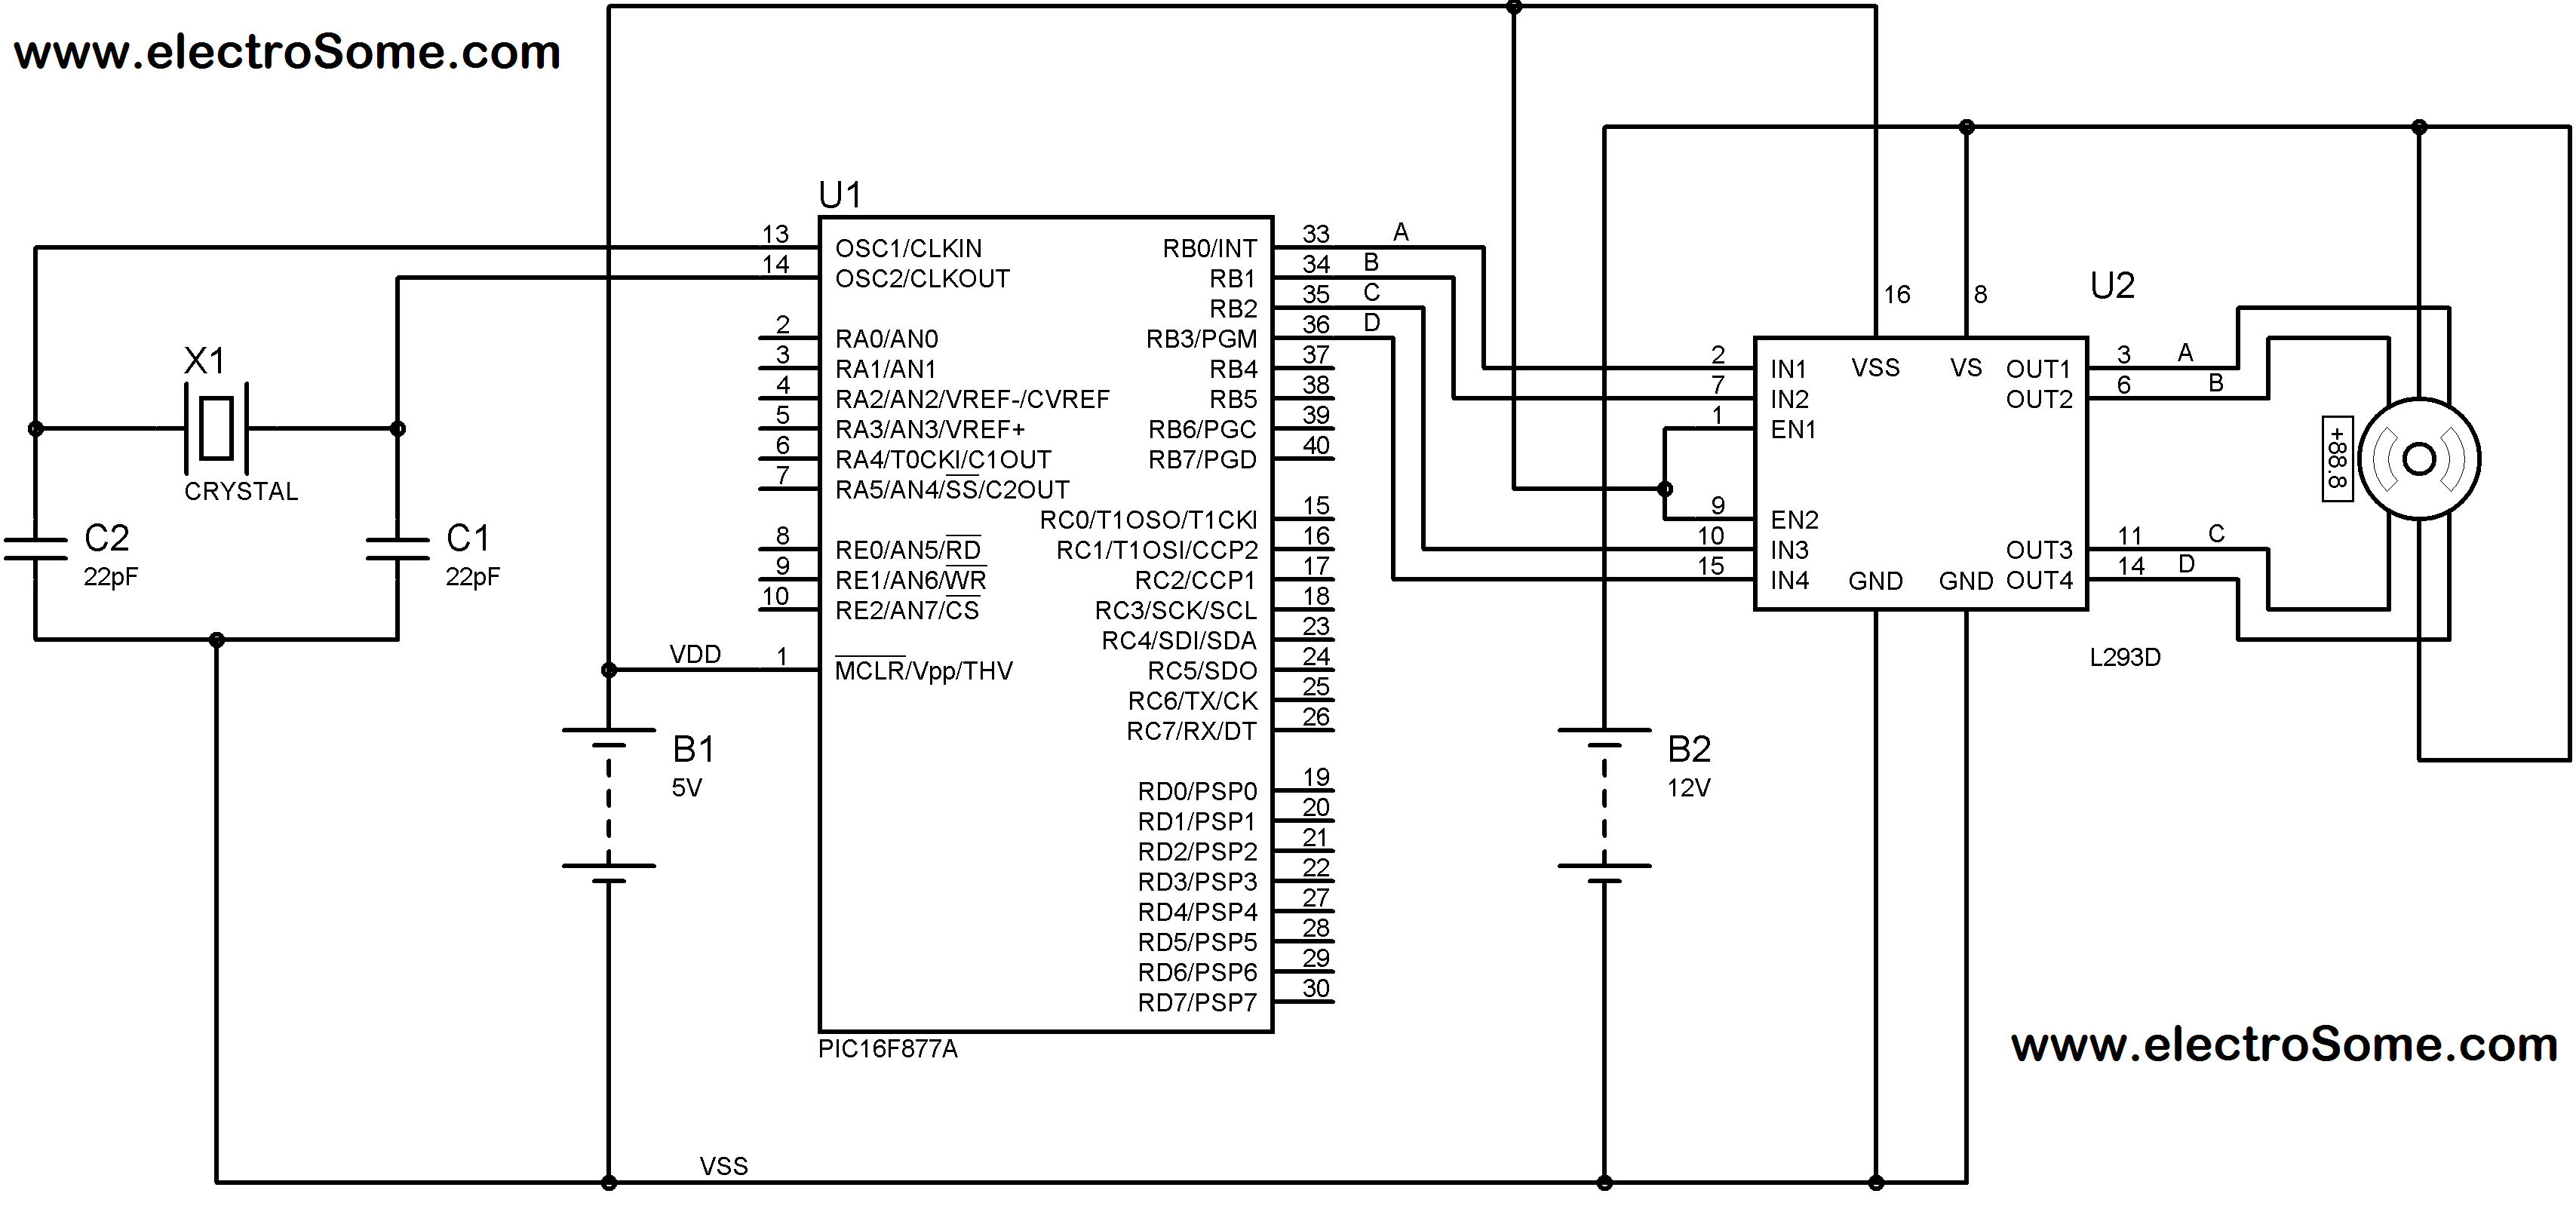 Interfacing Stepper Motor with PIC Microcontroller - MikroC